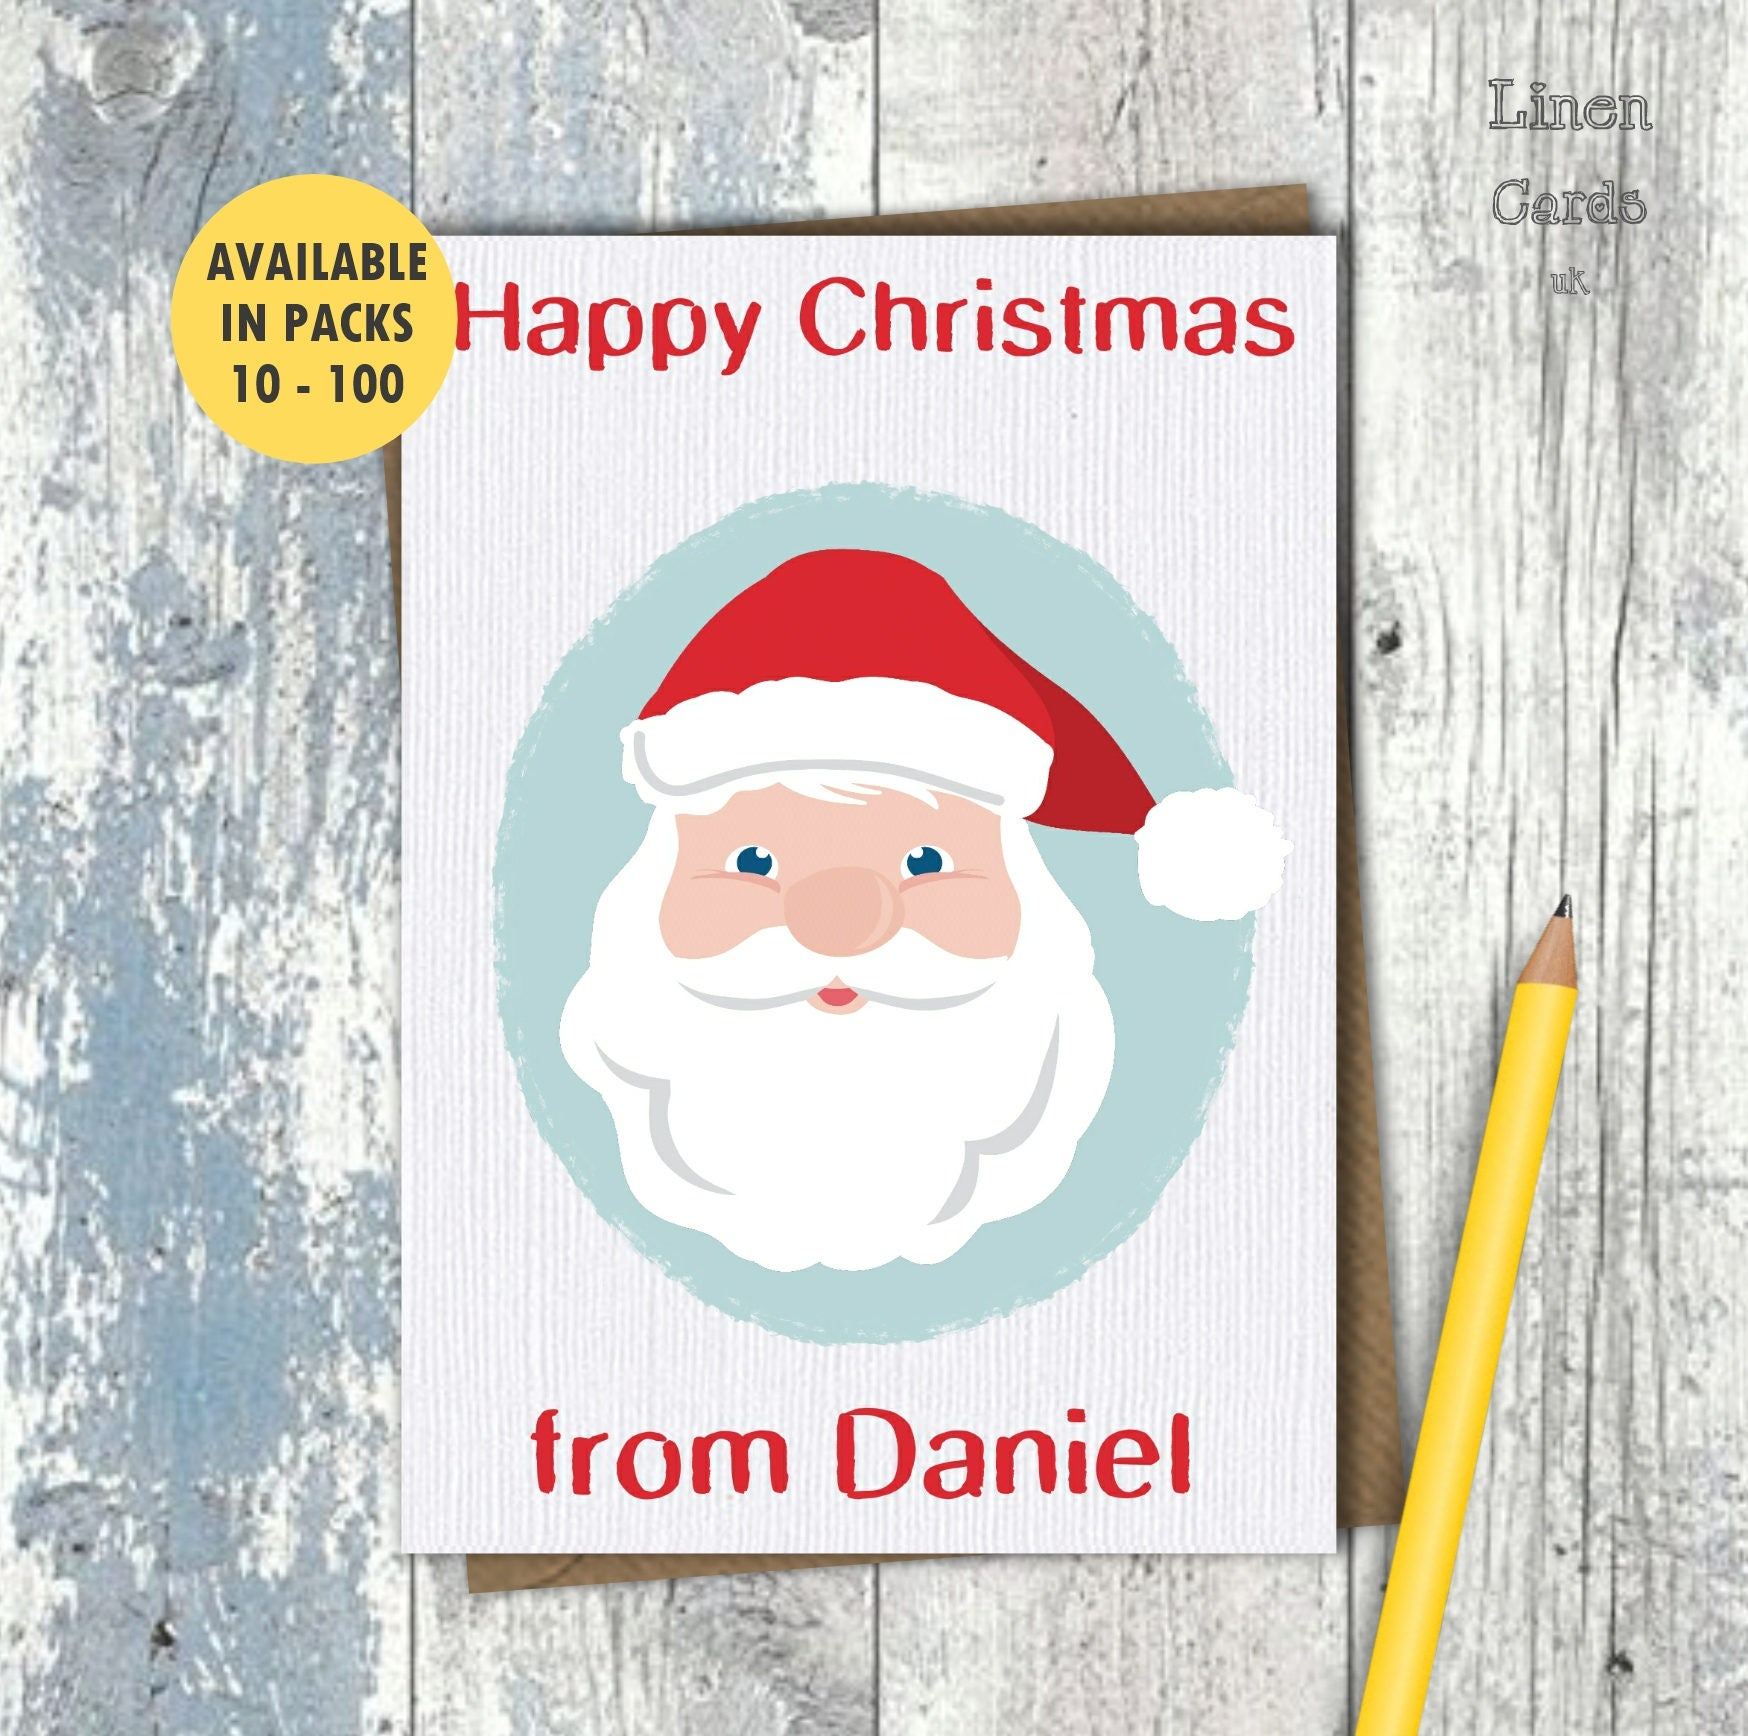 Personalised christmas cards packs childrens kids christmas cards personalised christmas cards packs childrens kids christmas cards school class christmas cards business reheart Images